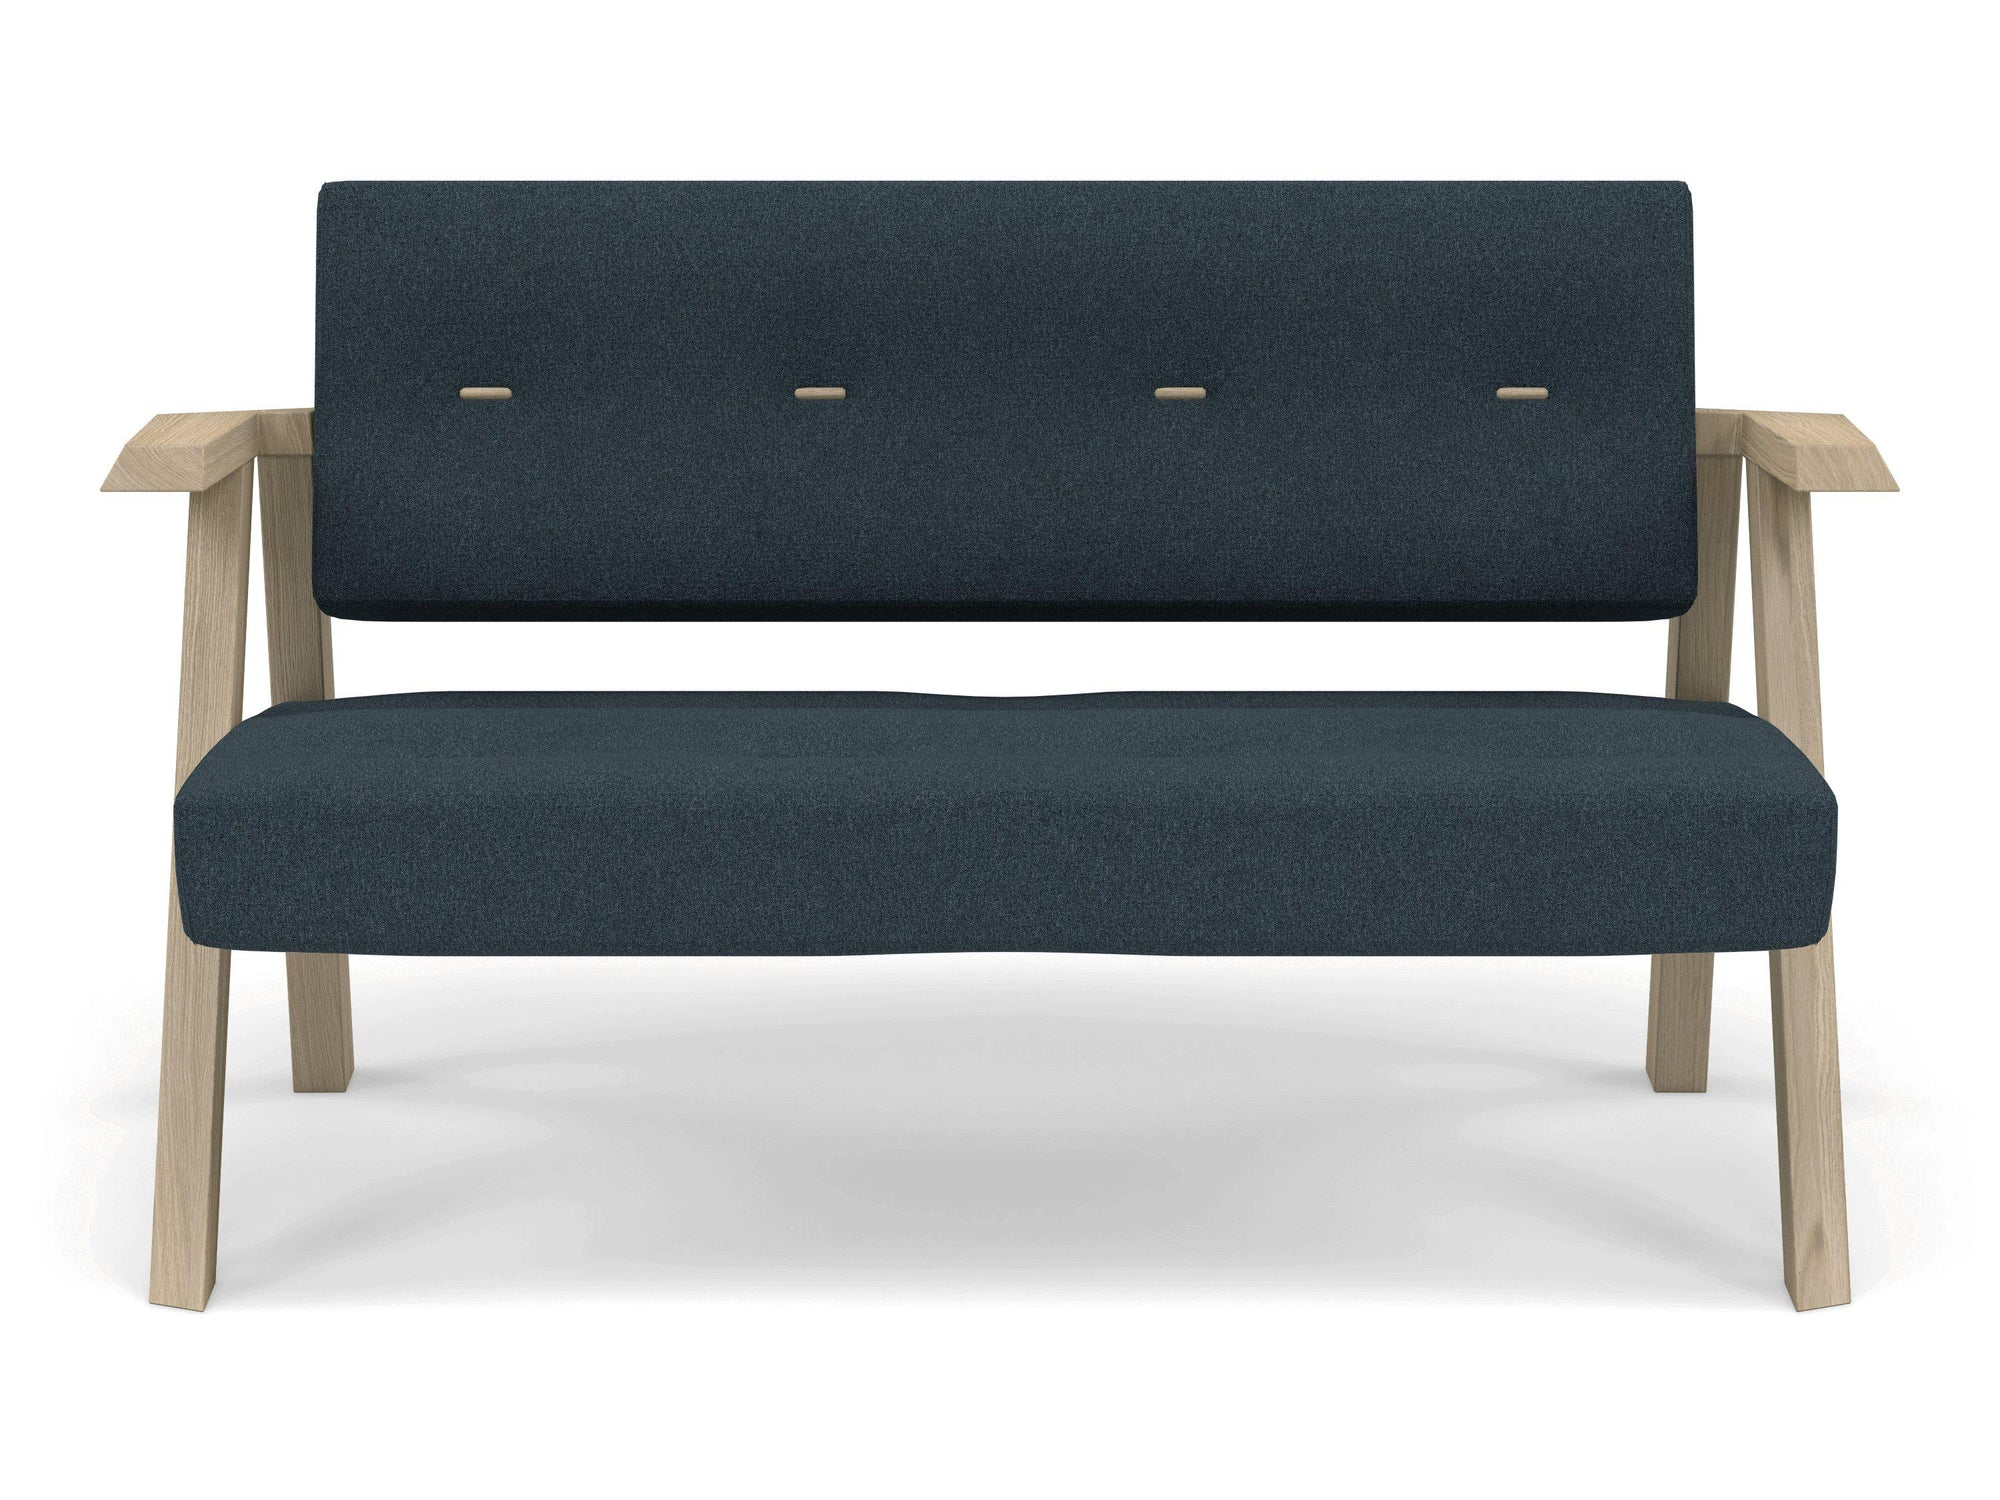 Classic Mid-century Design 2 Seater Sofa Armchair with Buttons in Denim Blue Fabric-Natural Oak-Distinct Designs (London) Ltd